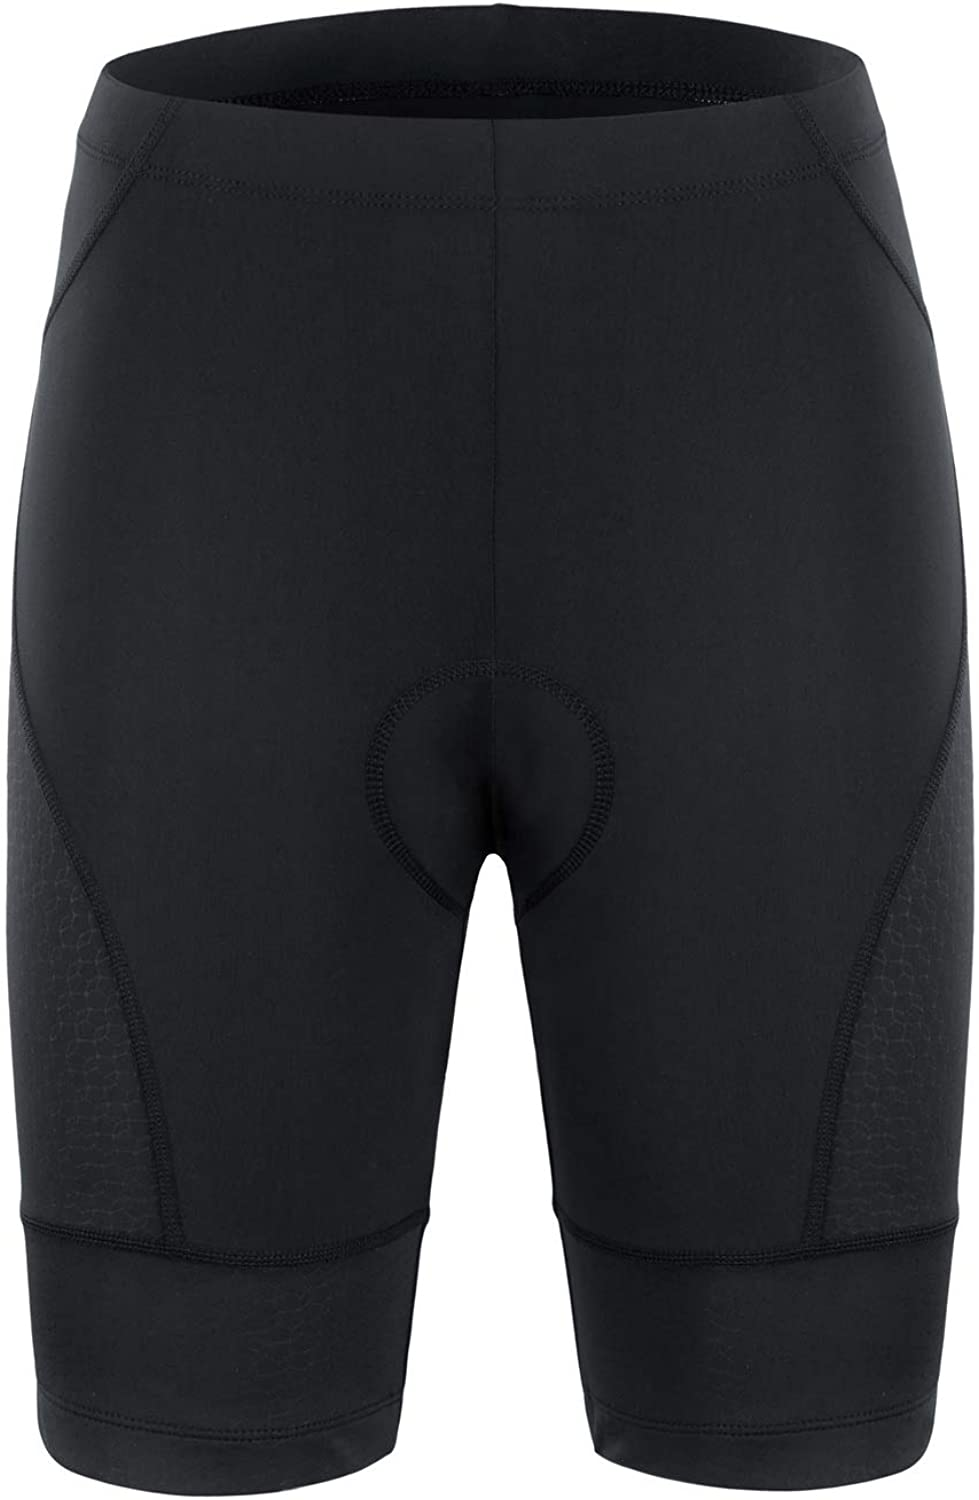 Cycling Shorts with 3D Gel Pad beroy Women Breathable Bike Shorts